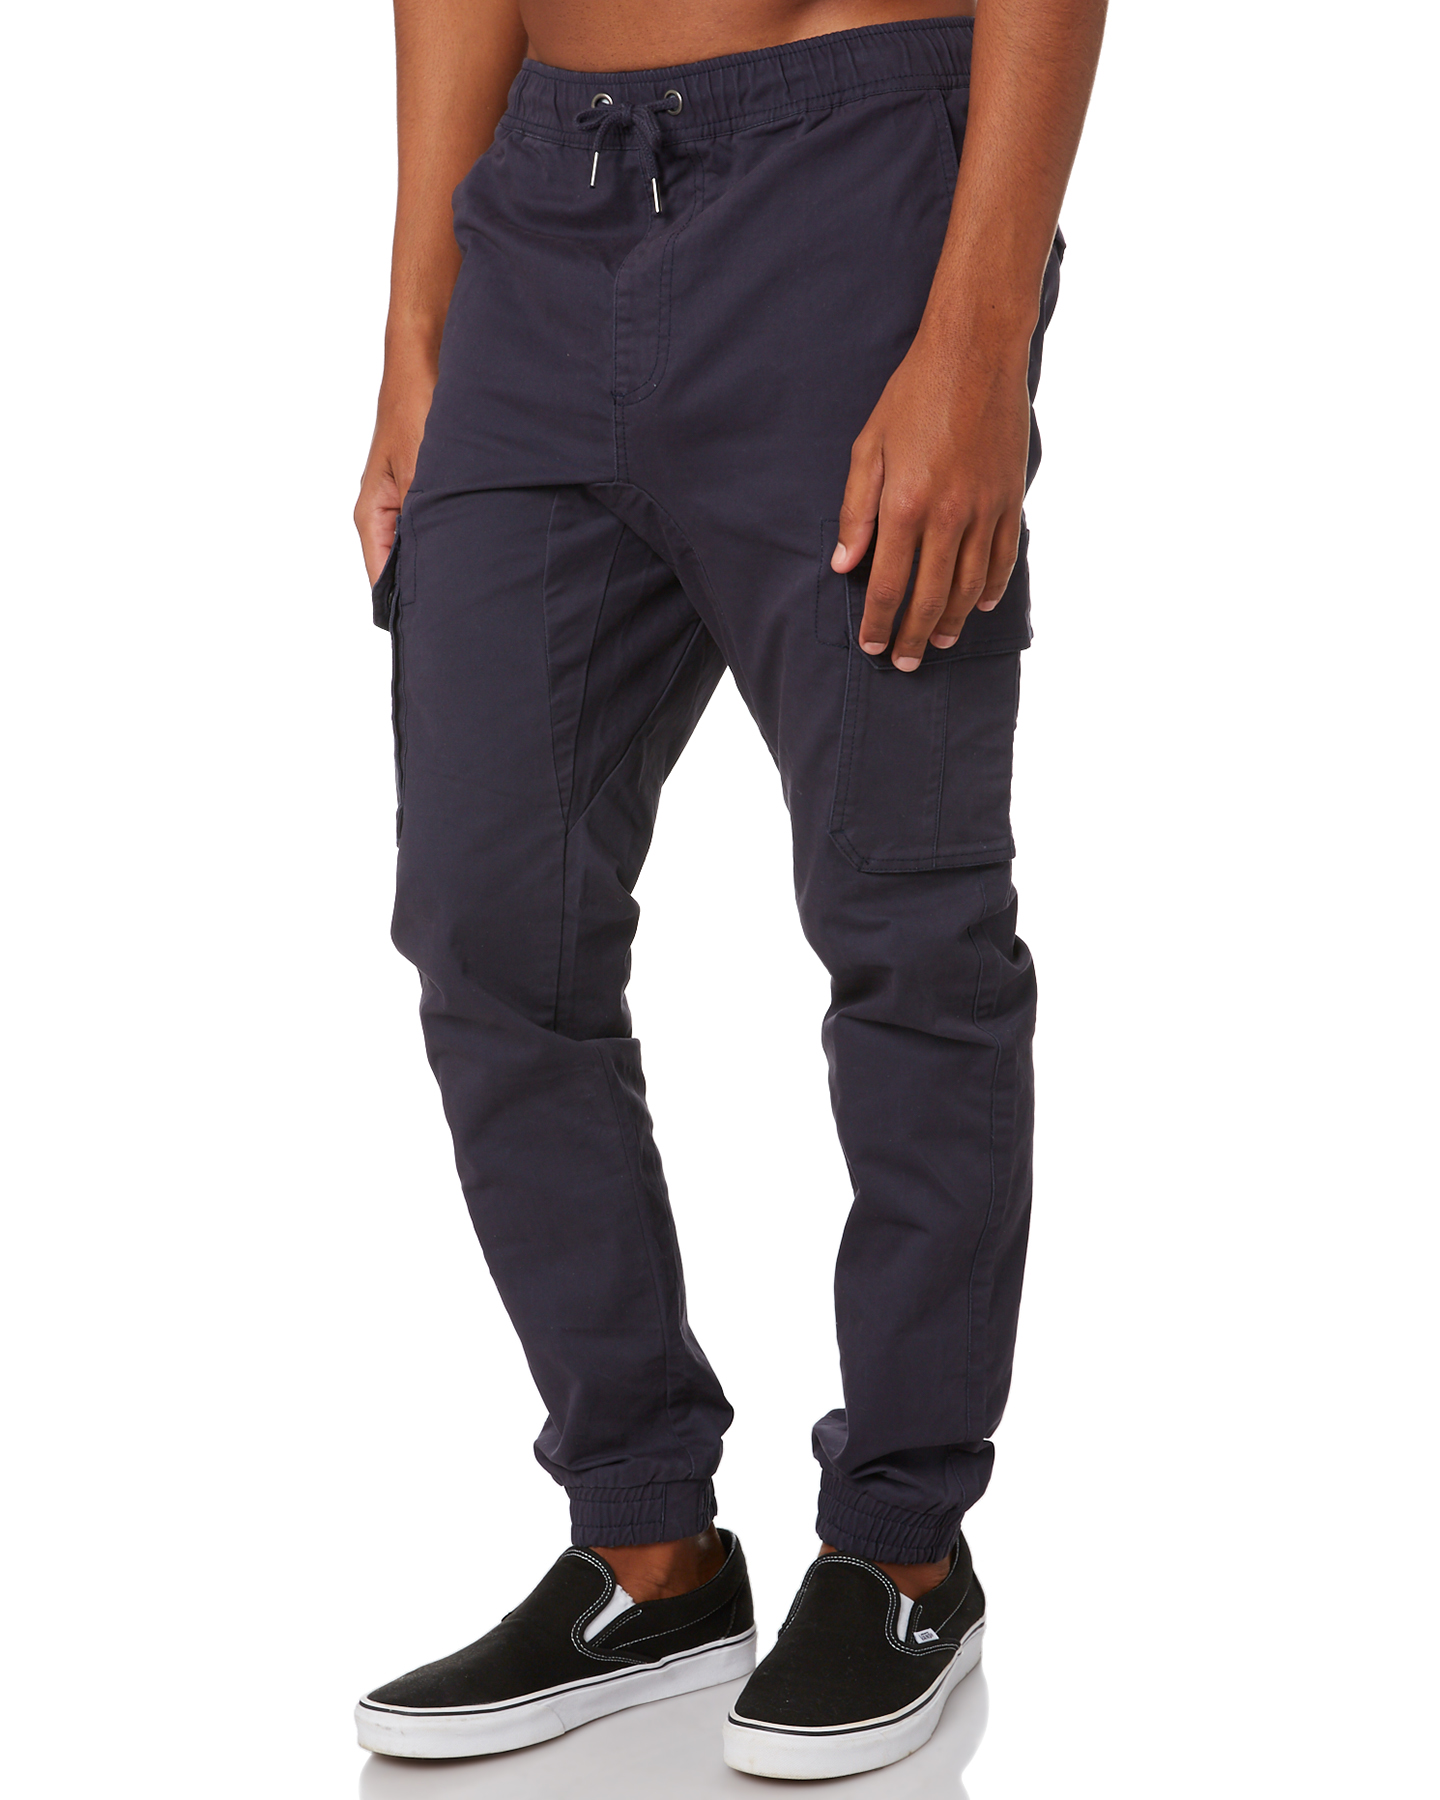 New-Swell-Men-039-s-Blunt-Cargo-Mens-Jogger-Pant-Cotton-Elastane-Green thumbnail 22